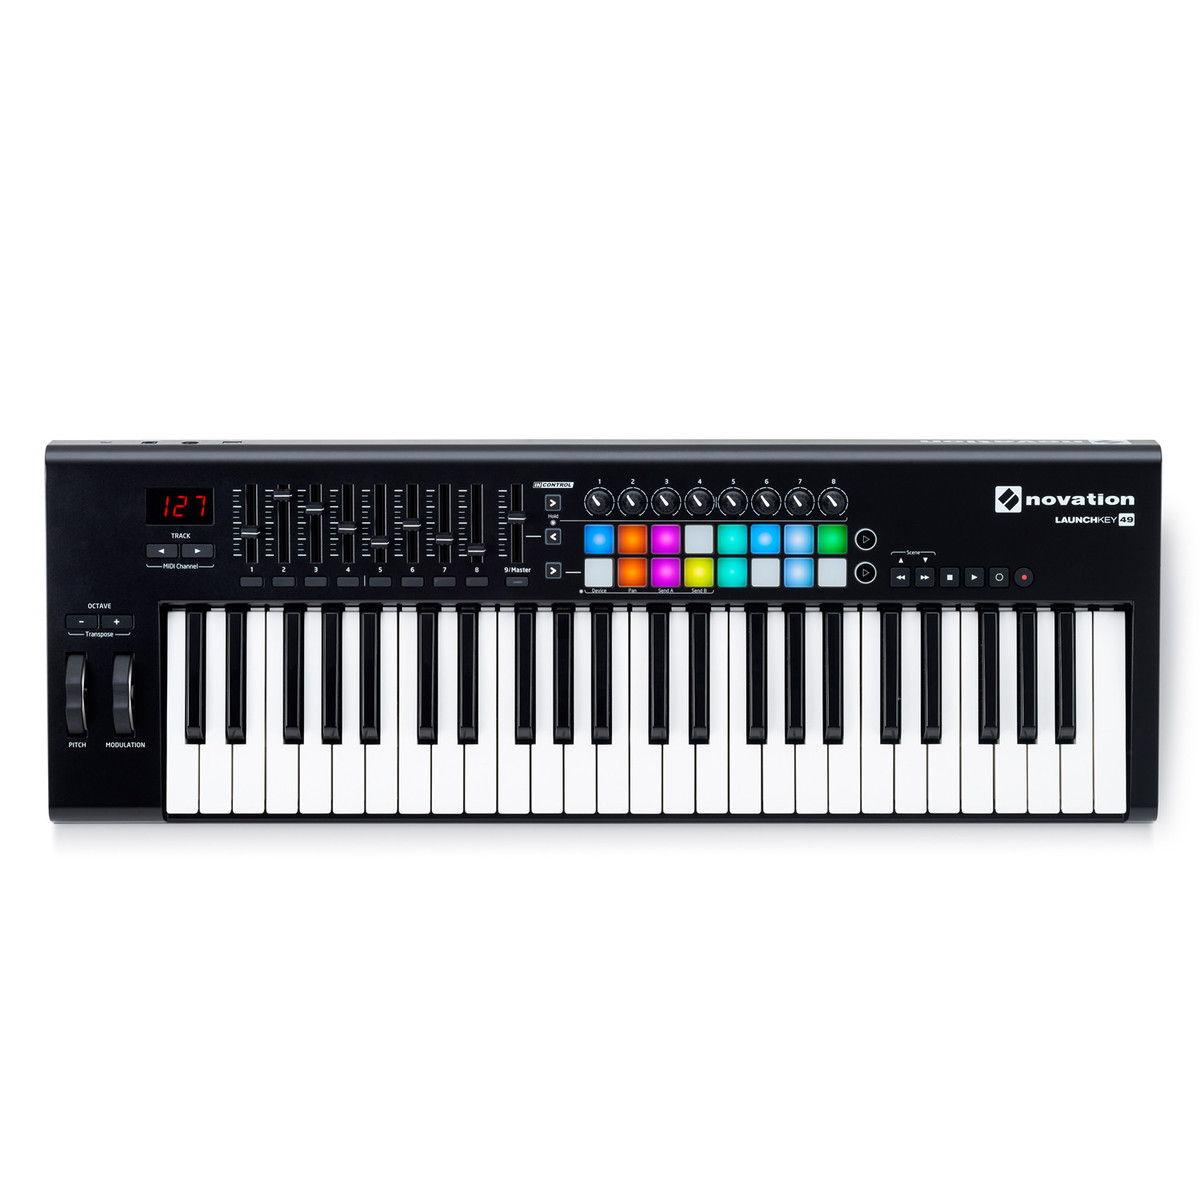 novation launchkey 49 mk2 midi controller keyboard at. Black Bedroom Furniture Sets. Home Design Ideas